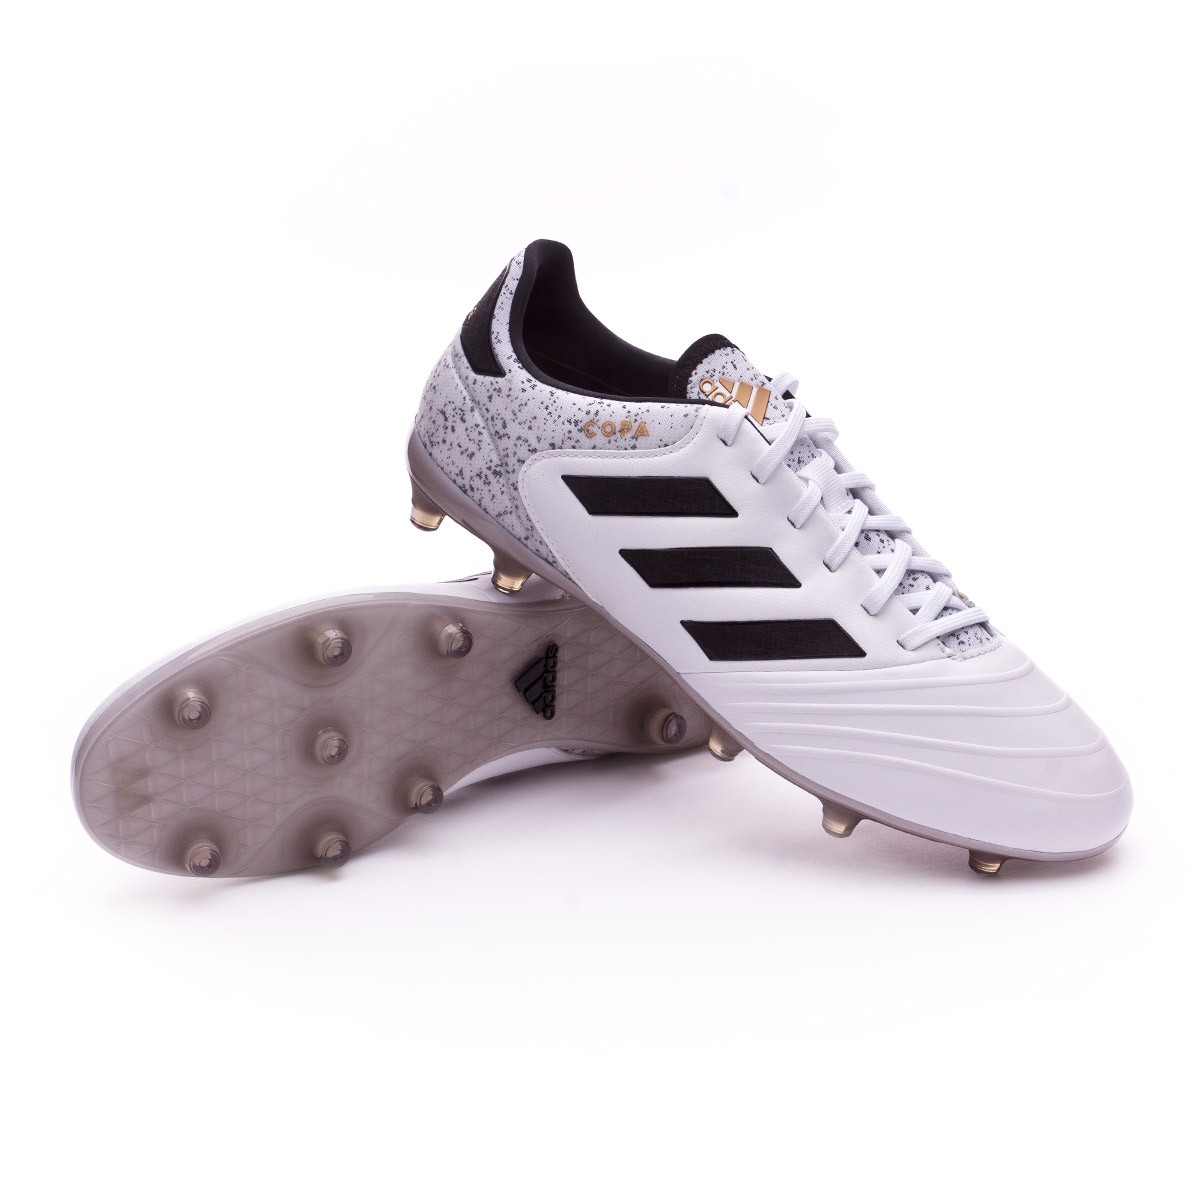 8cfa6d54cc2b adidas Copa 18.2 FG Football Boots. White-Core black-Tactile gold ...